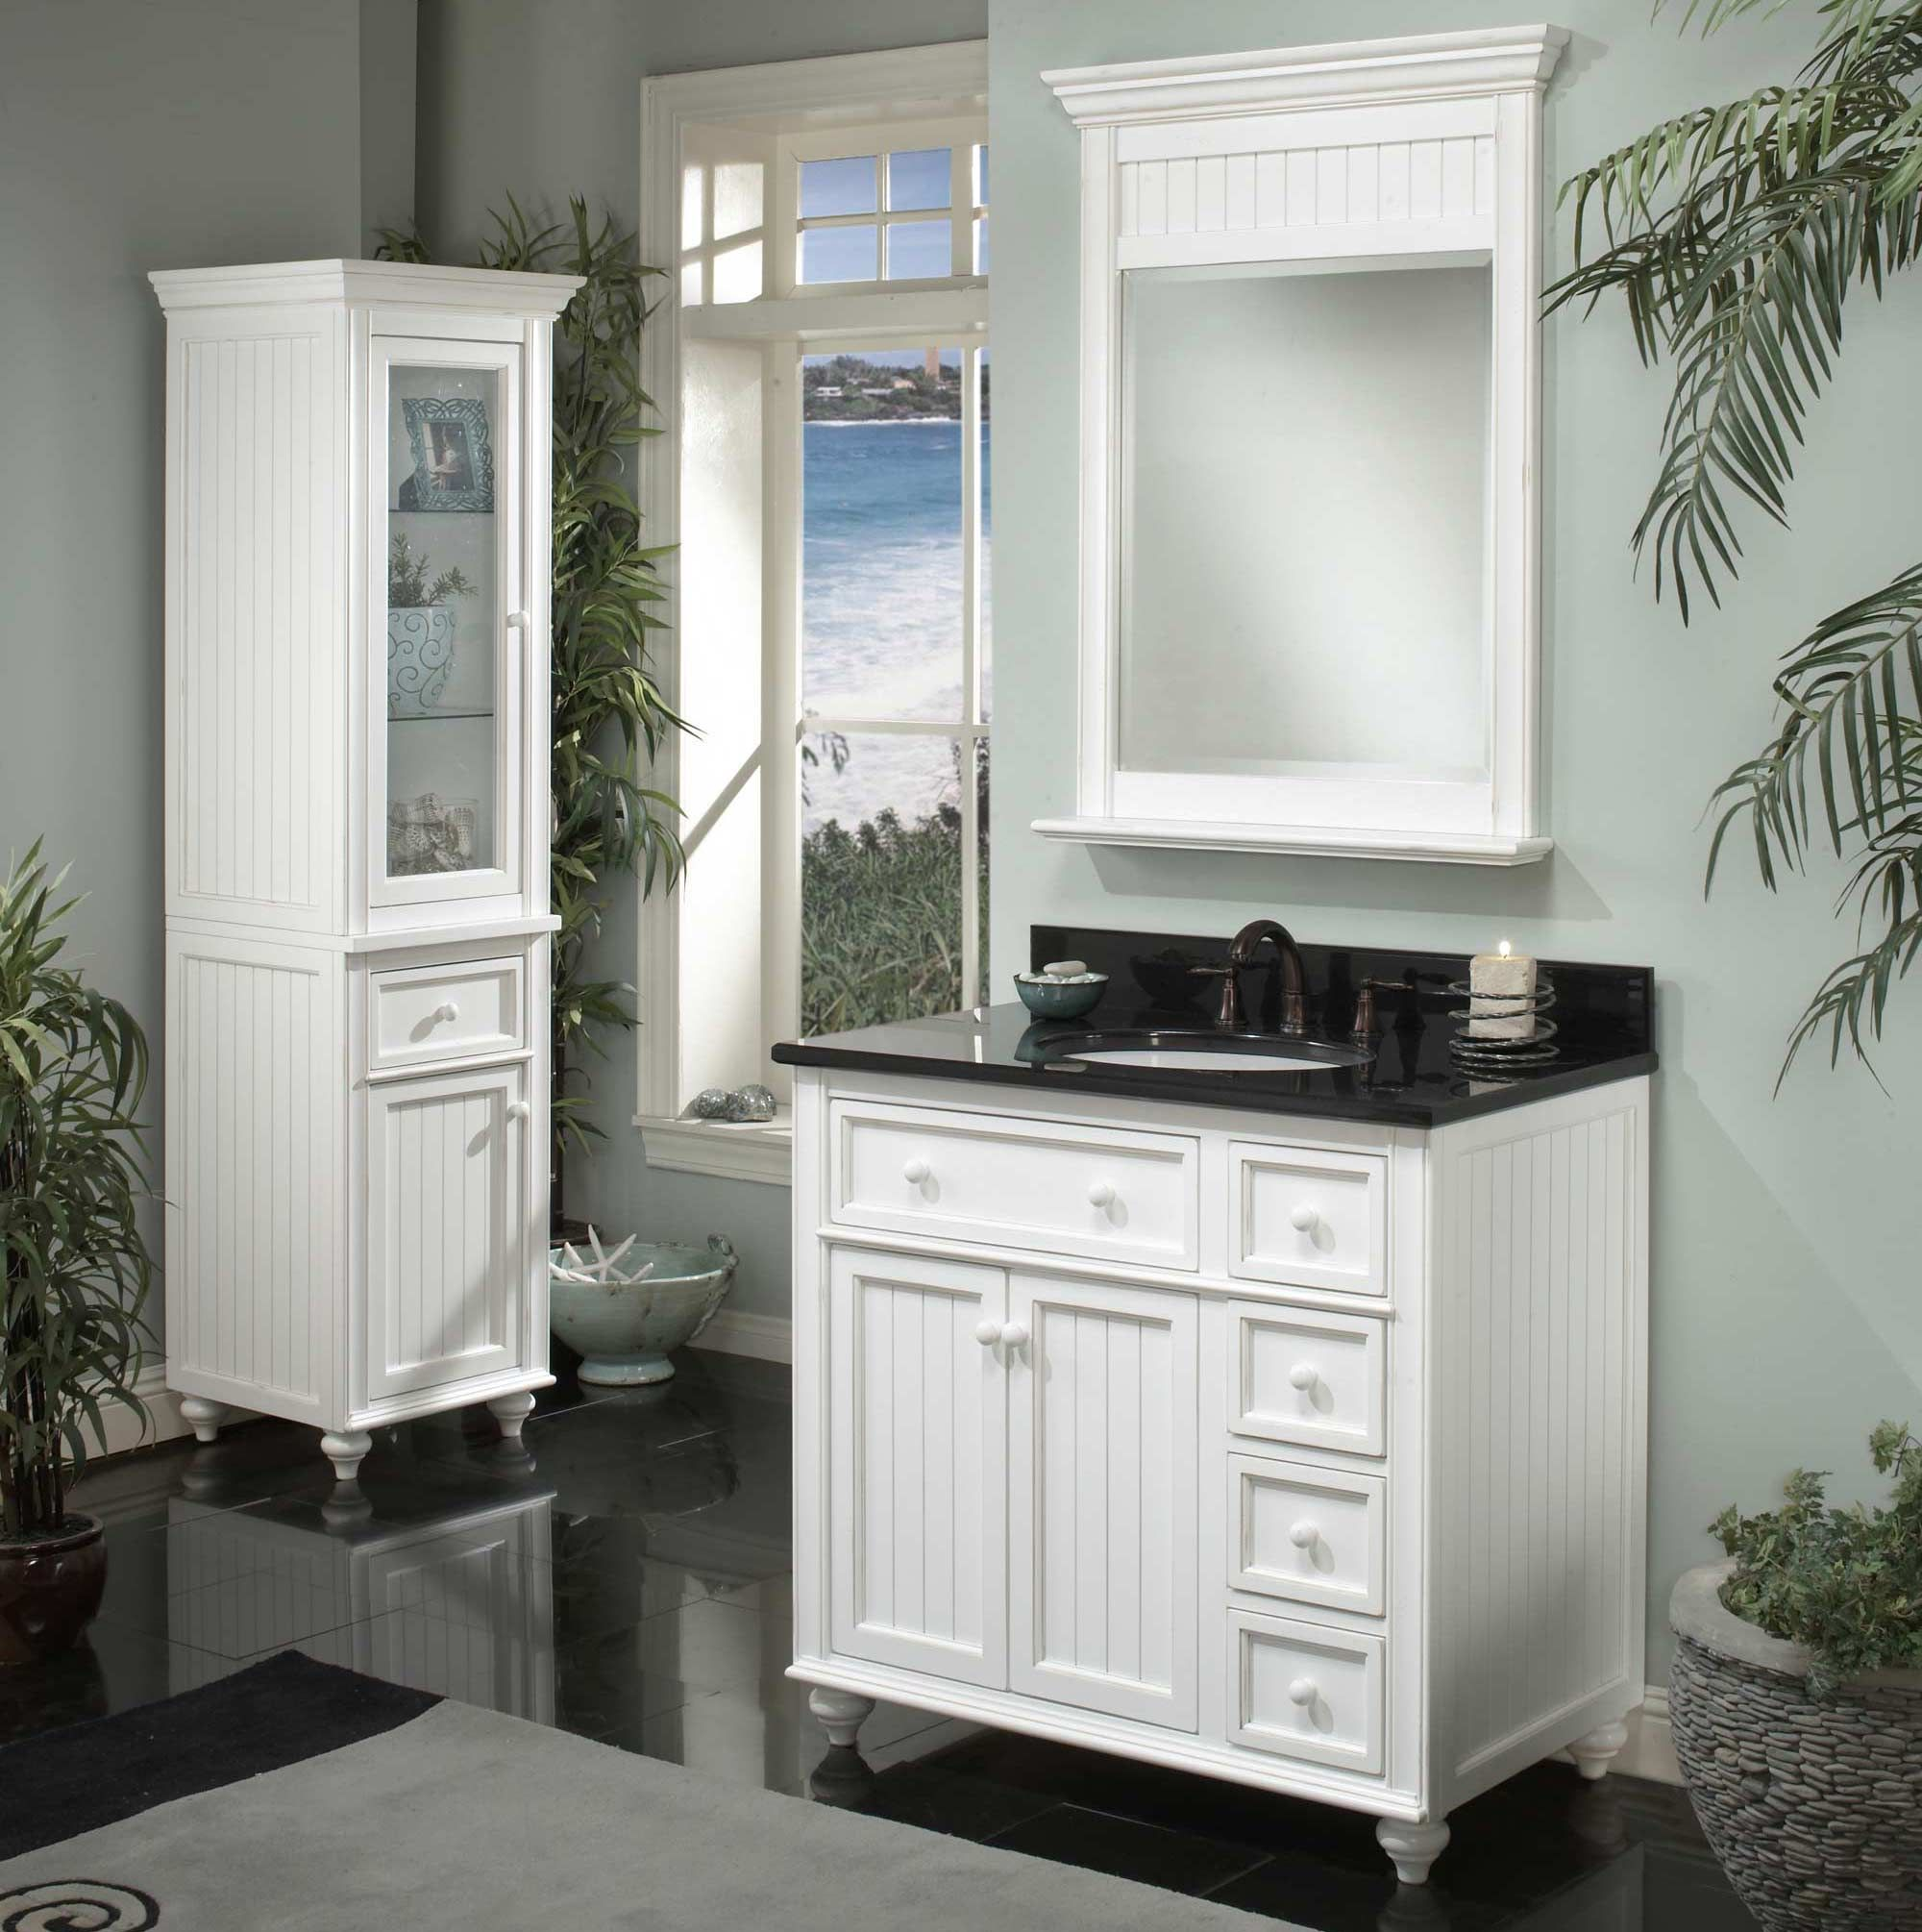 cottage style vanities for bathrooms | Sagehill\'s Cottage Retreat ...